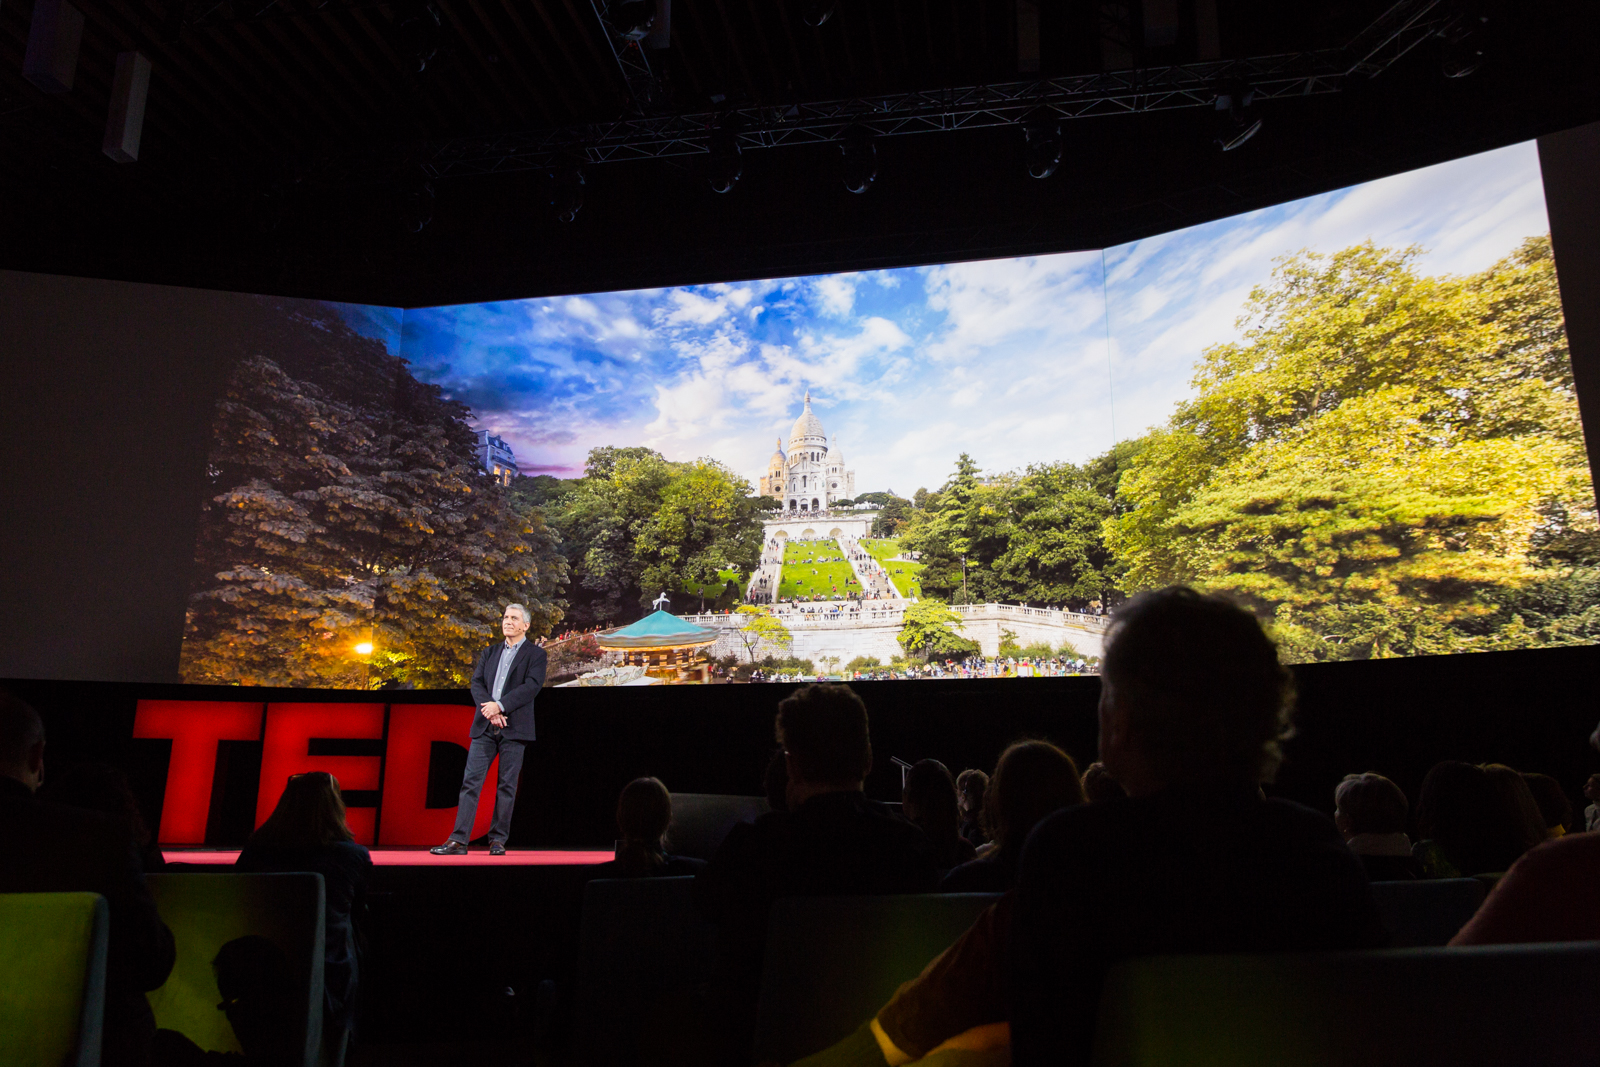 Stephen Wilkes speaks at TED2016 - Dream, February 15-19, 2016, Vancouver Convention Center, Vancouver, Canada. Photo: Bret Hartman / TED